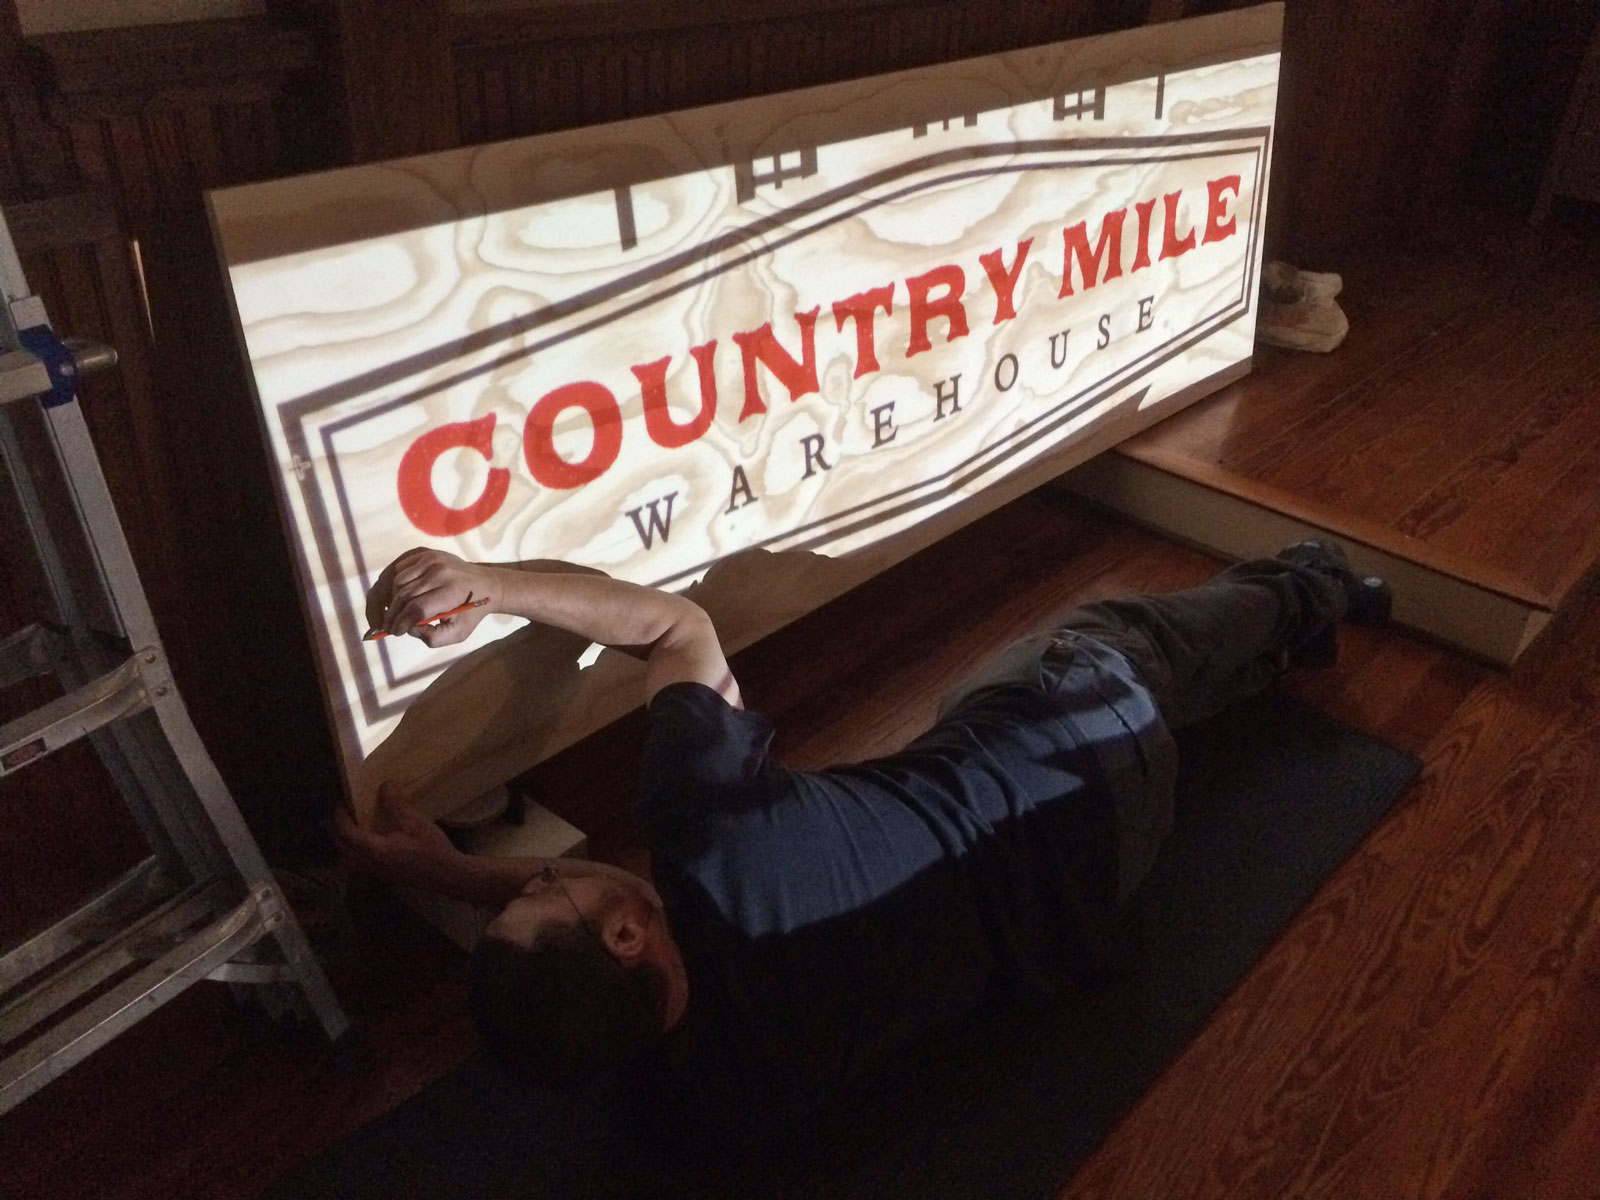 The Country Mile Warehouse logo design being applied to signage.